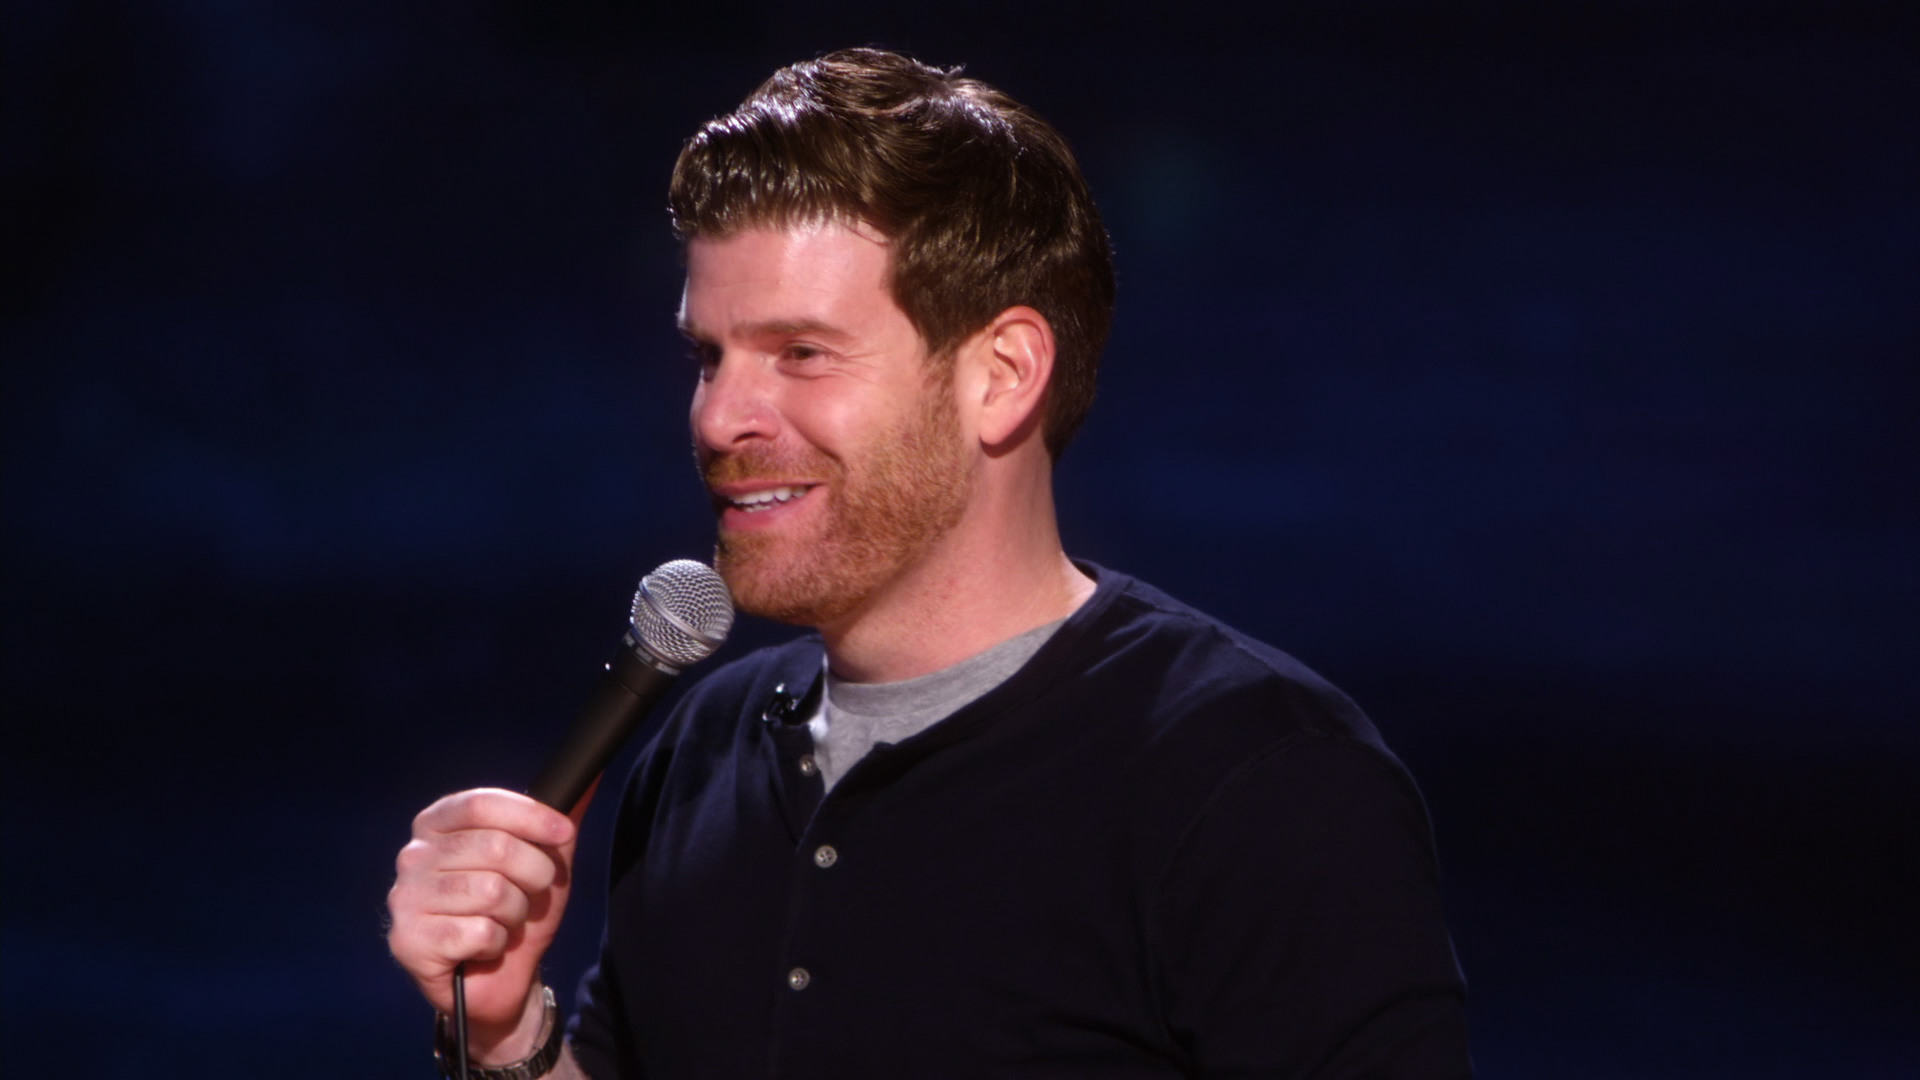 Uncensored - Steve Rannazzisi - Pot Cookie Before Takeoff Pt. 1